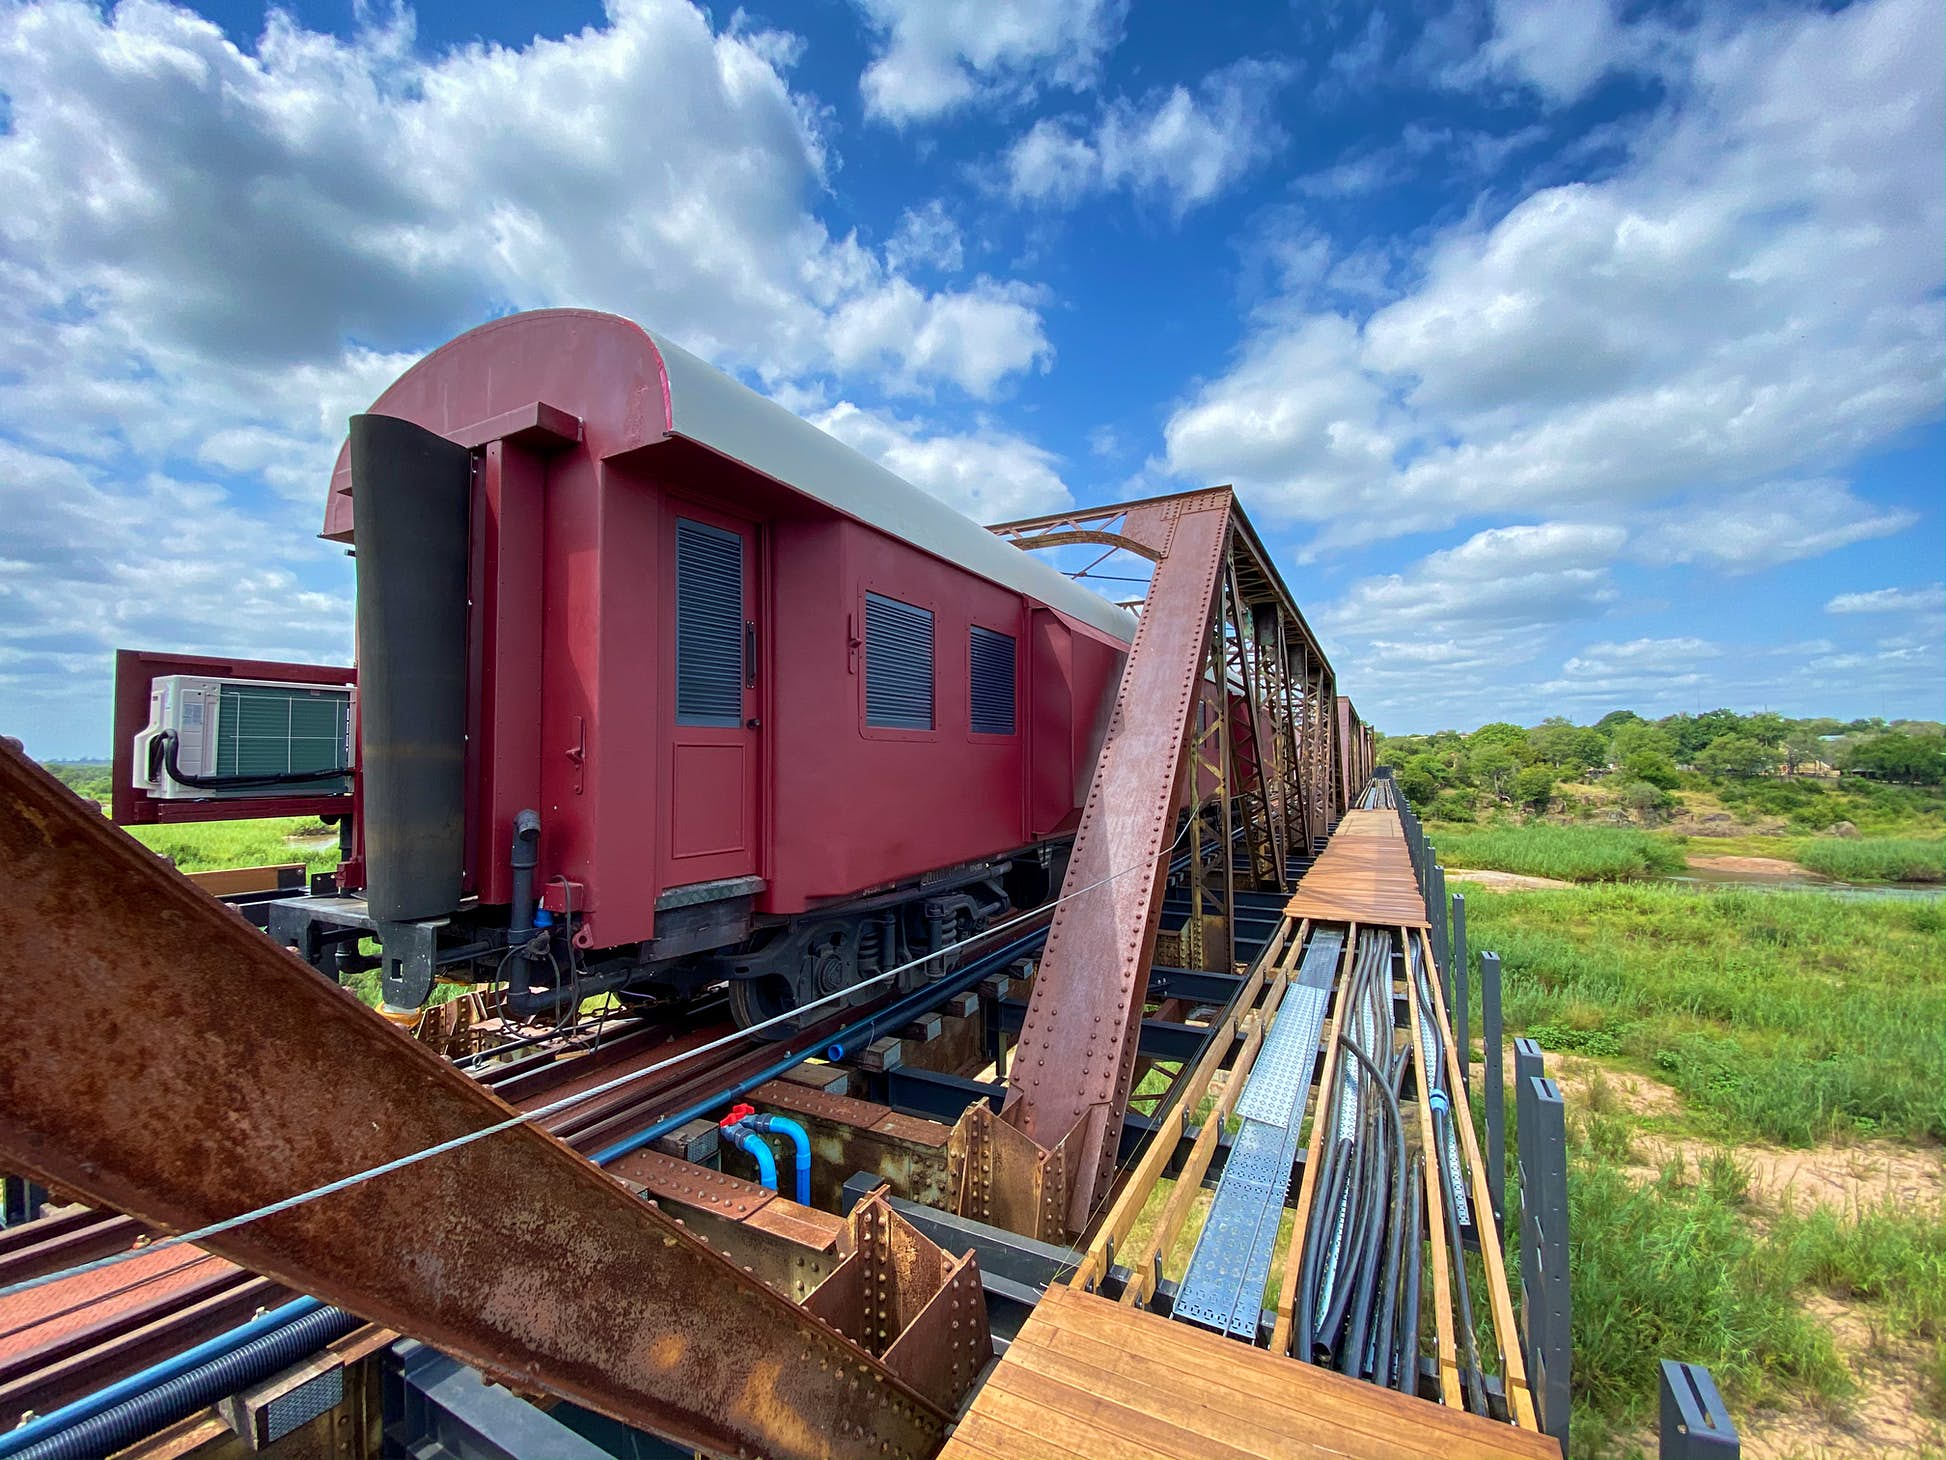 The first carriage of the hotel has been completed © Francois van Zyl / Kruger Shalati: The Train on the Bridge